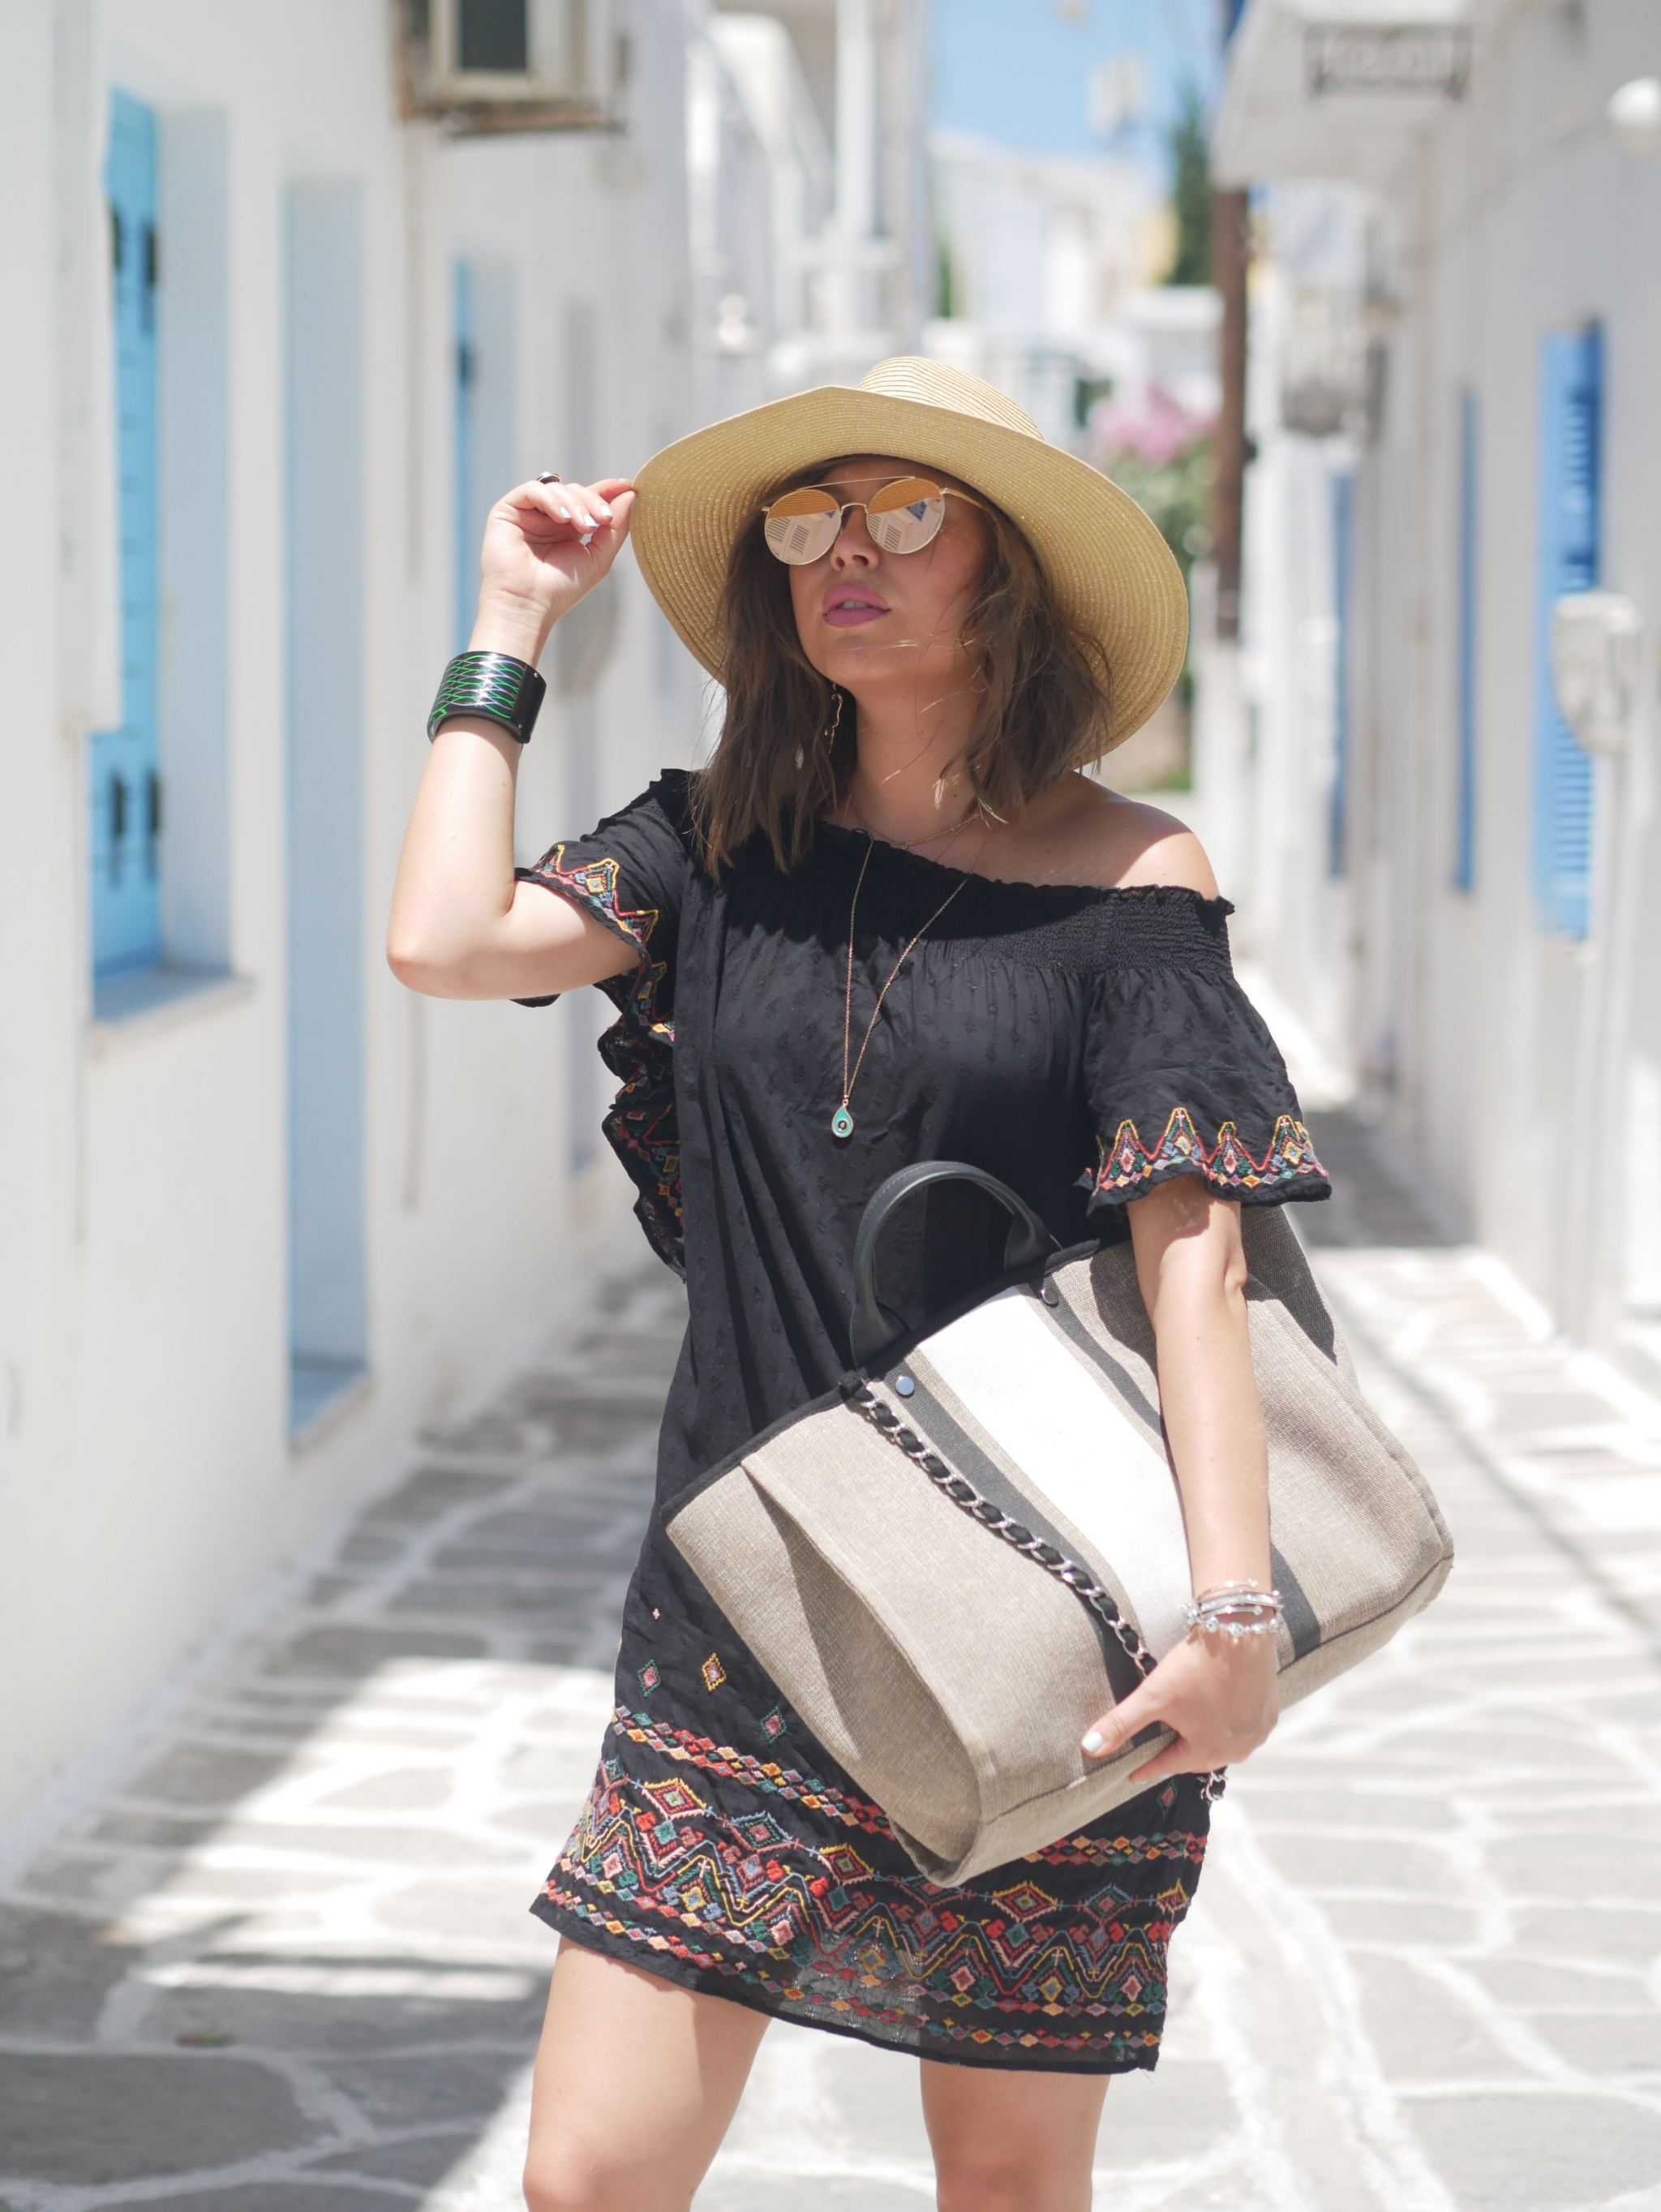 manchester fashion blogger, manchester fashion , Mykonos , Greece , Travel guide to Mykonos, Travel guide